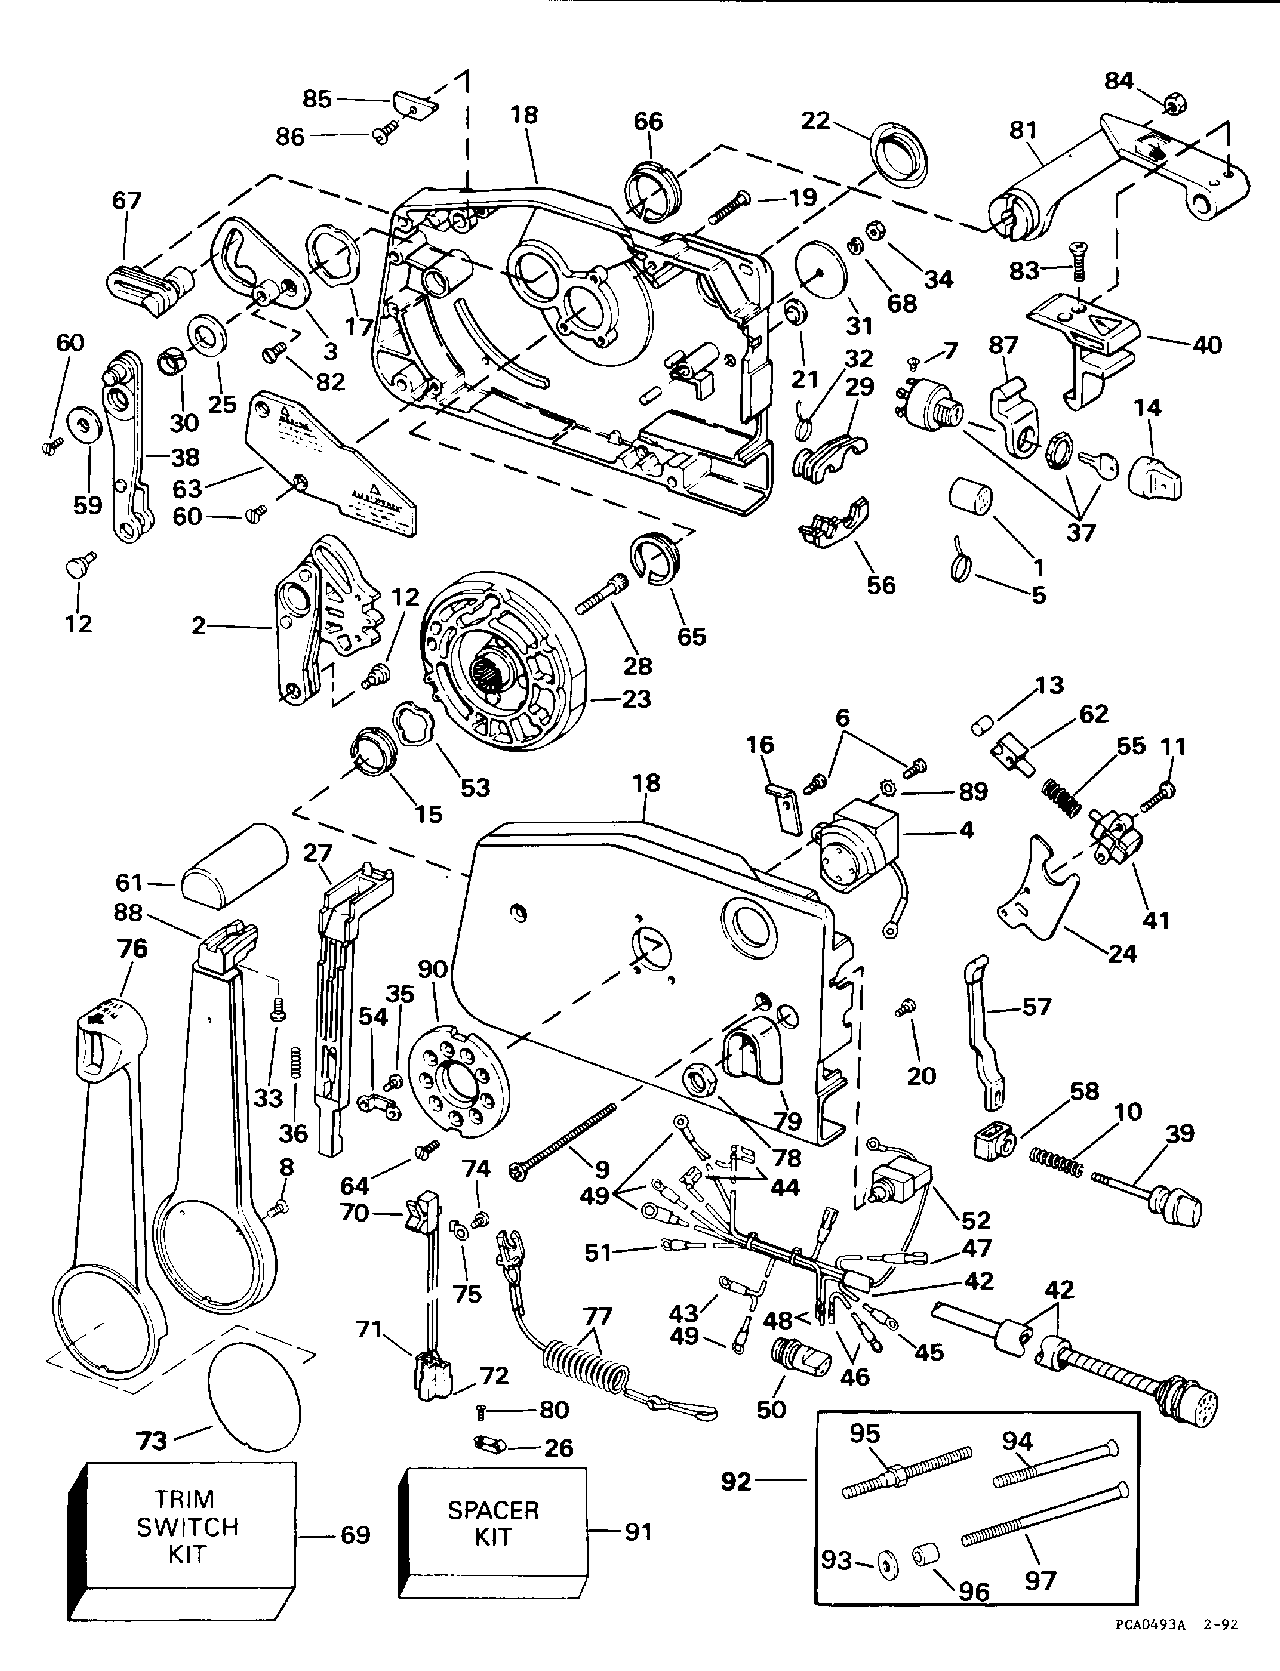 1996 evinrude ignition wiring diagram technical information